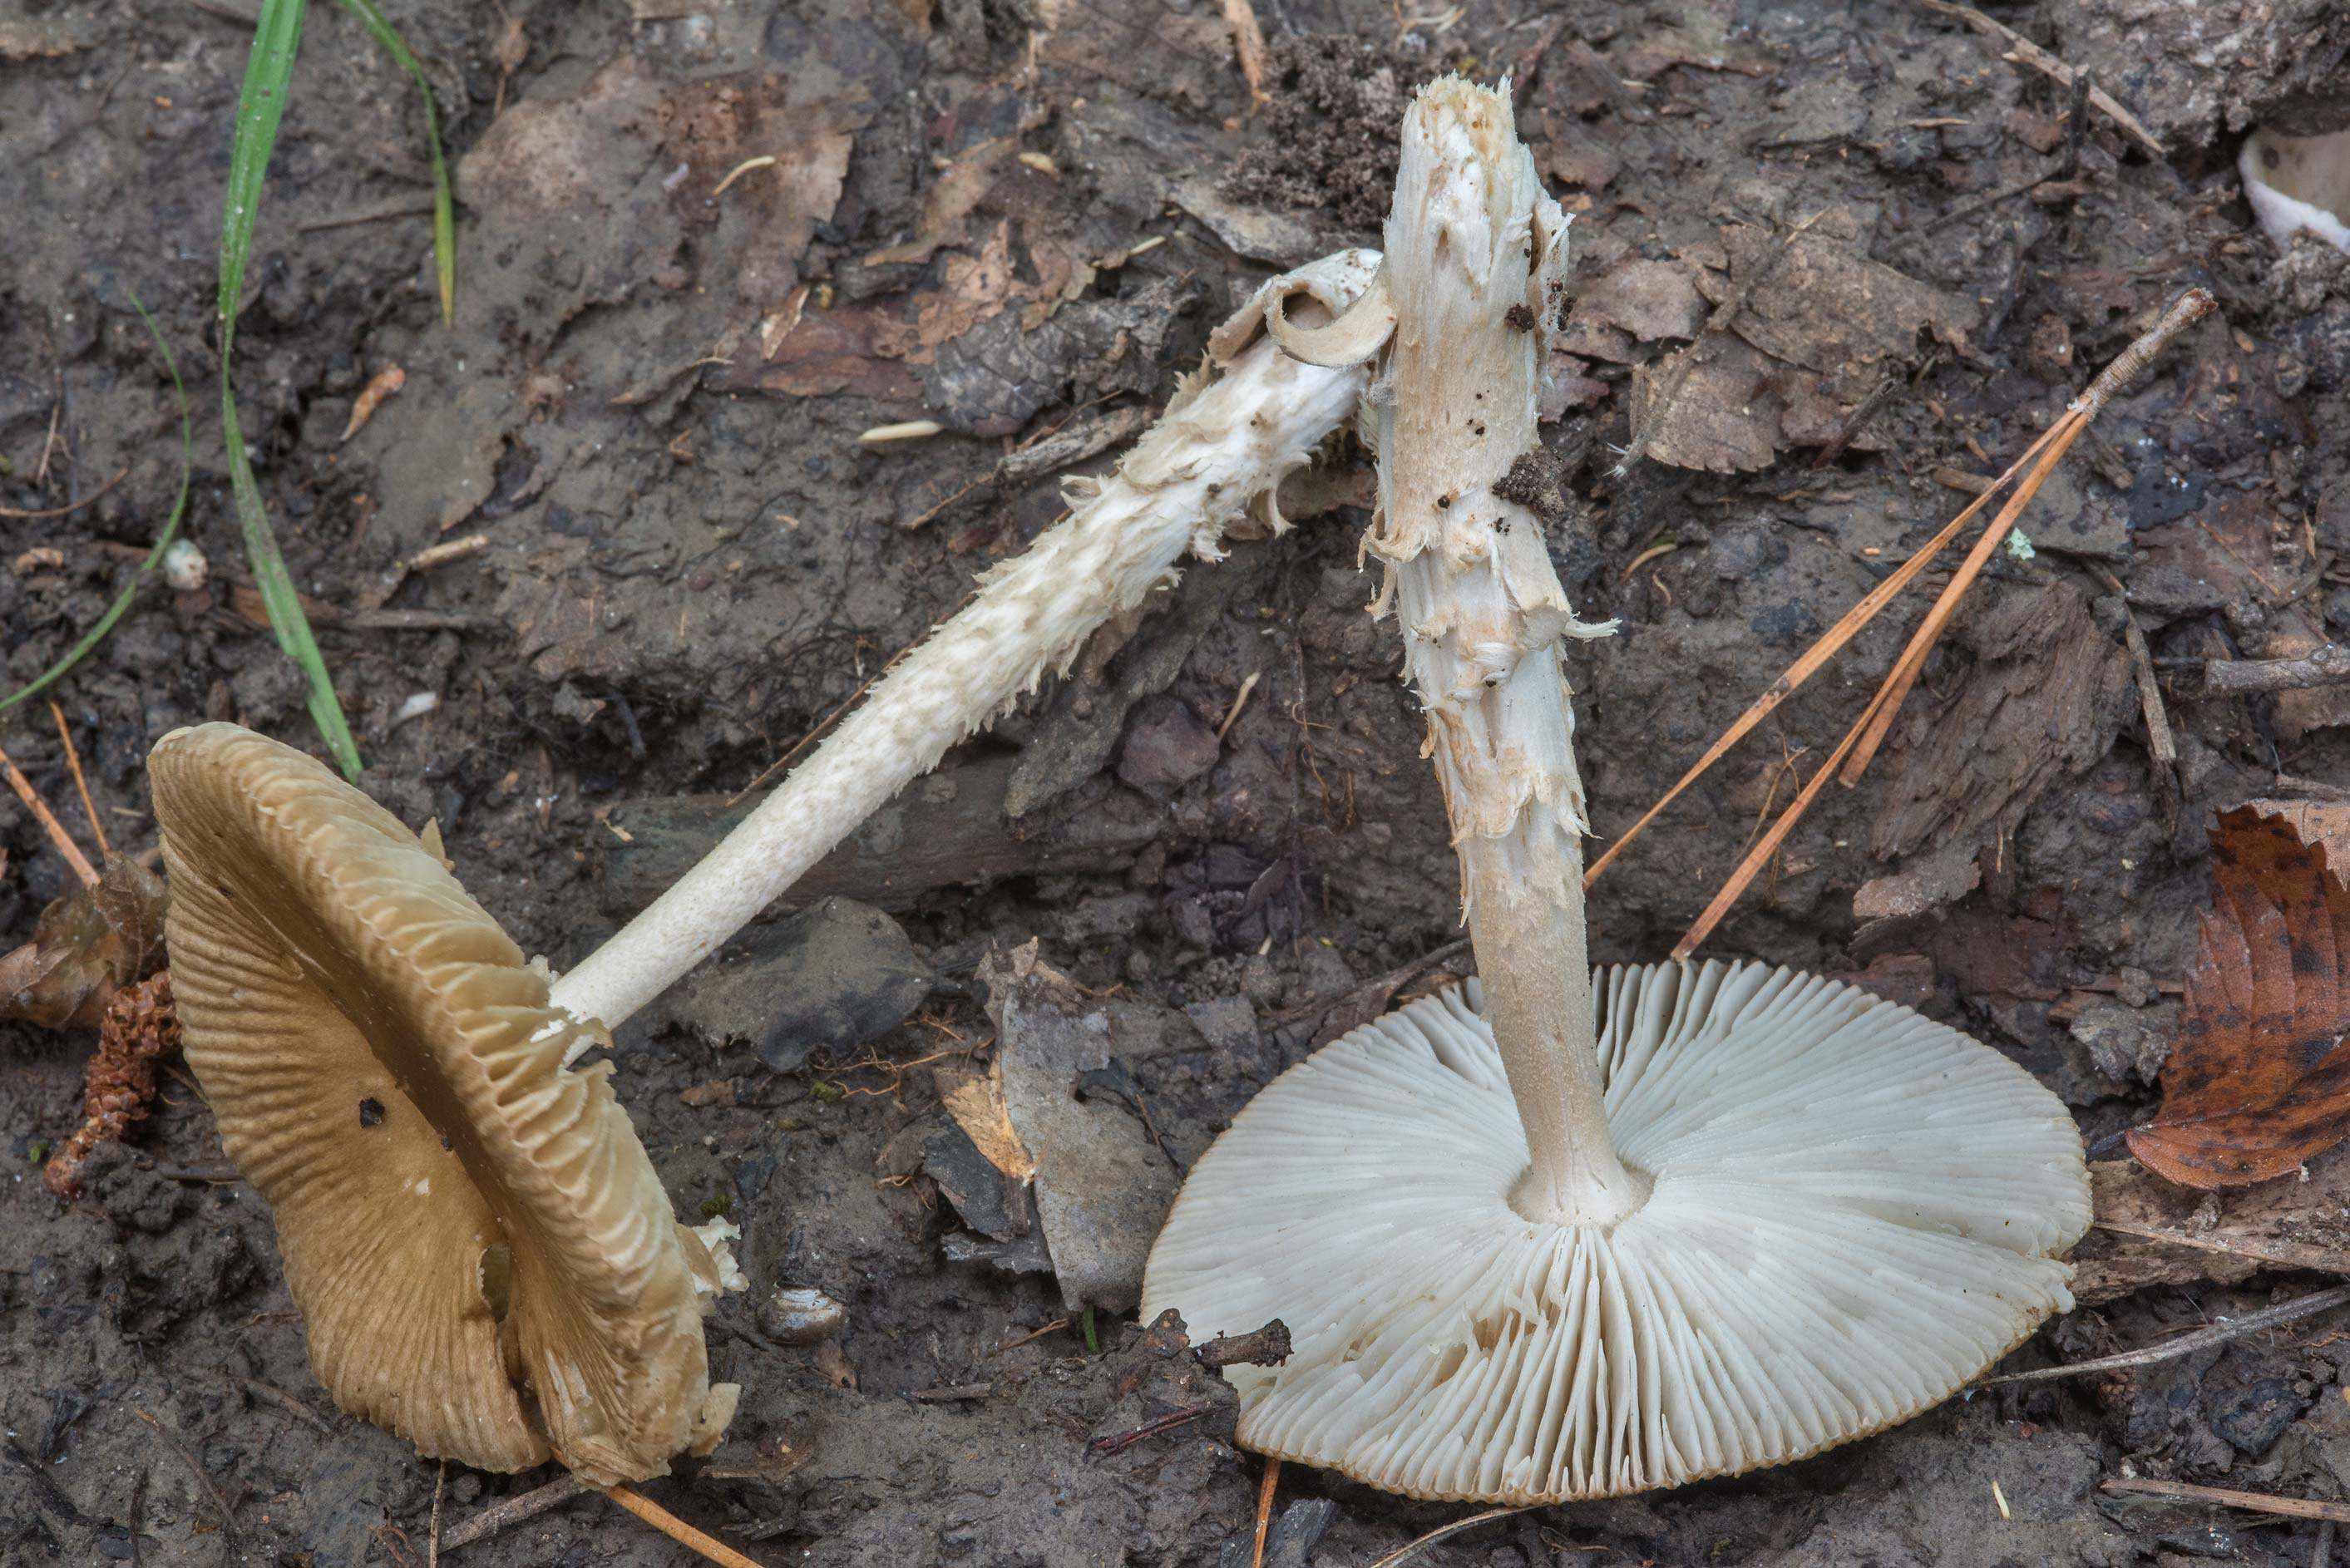 Gills of grisette mushrooms (Amanita sect...Forest, near Huntsville. Texas